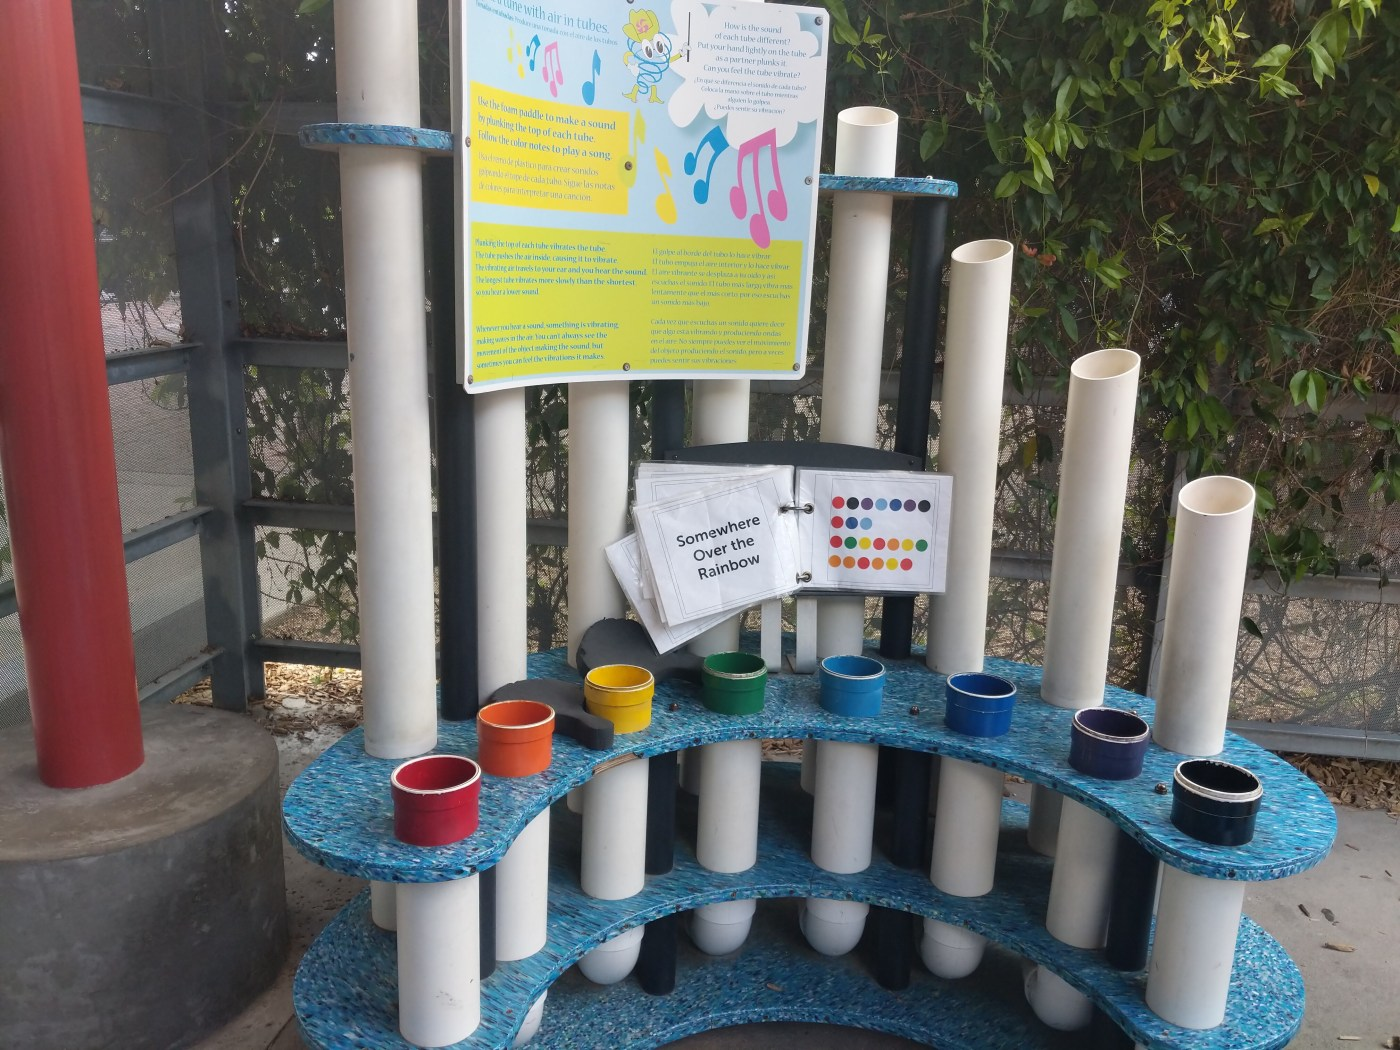 A series of different colored pipes on a structure with a mallet that can be hit to play music